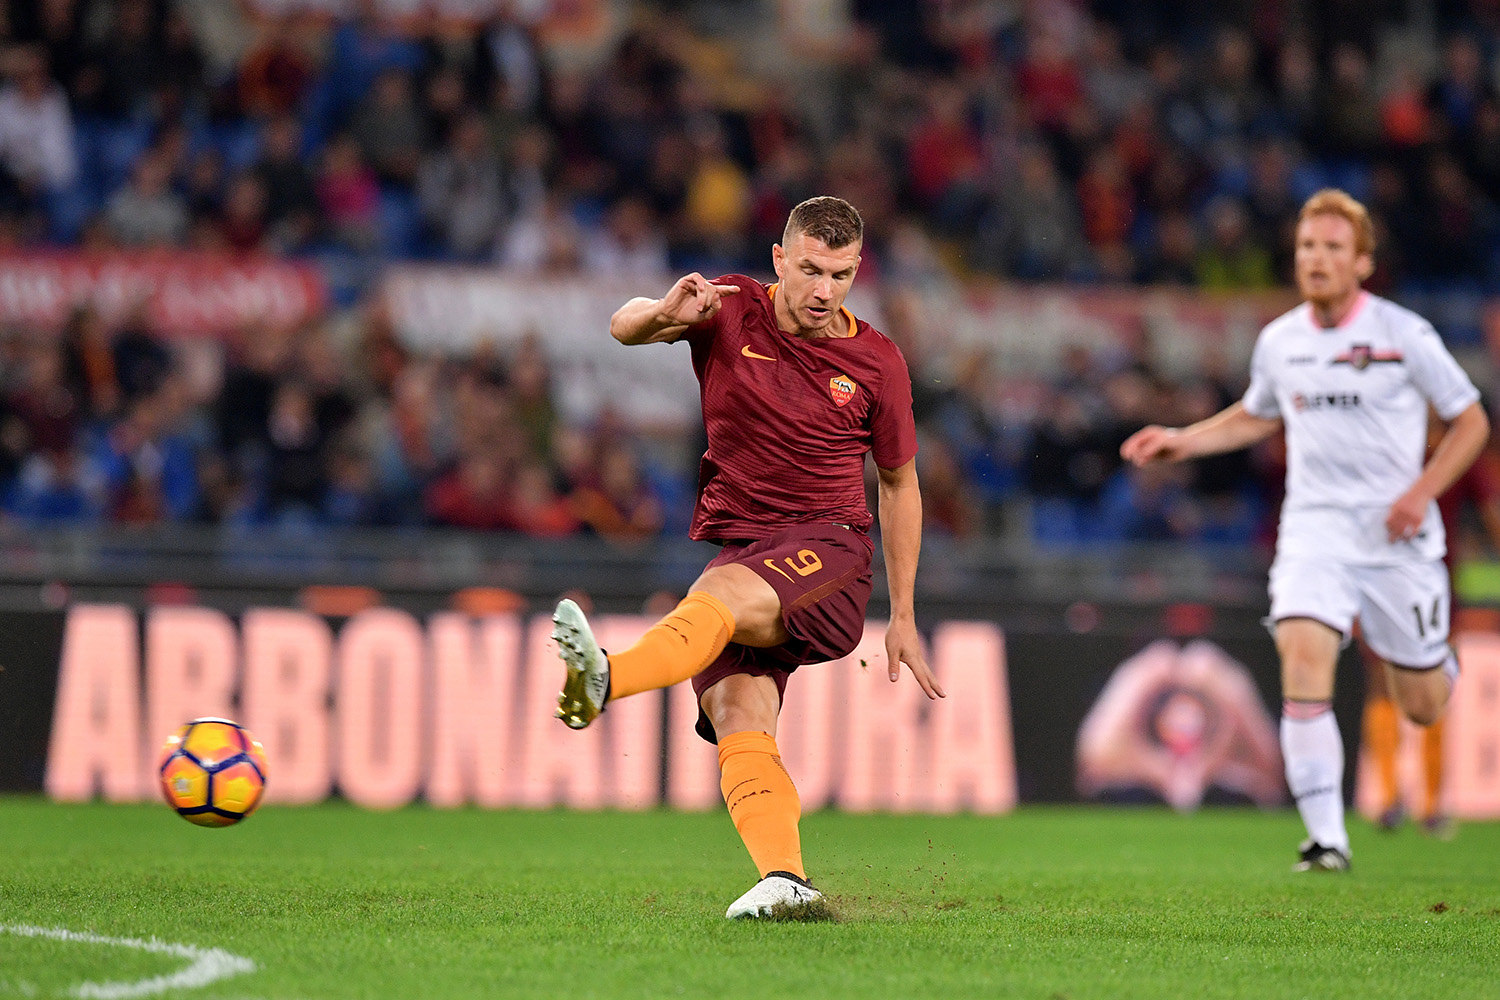 http://res.cloudinary.com/as-roma-turbine-production/image/upload/v1/asroma-uat/tm0jmfsaibzkmas0td2m